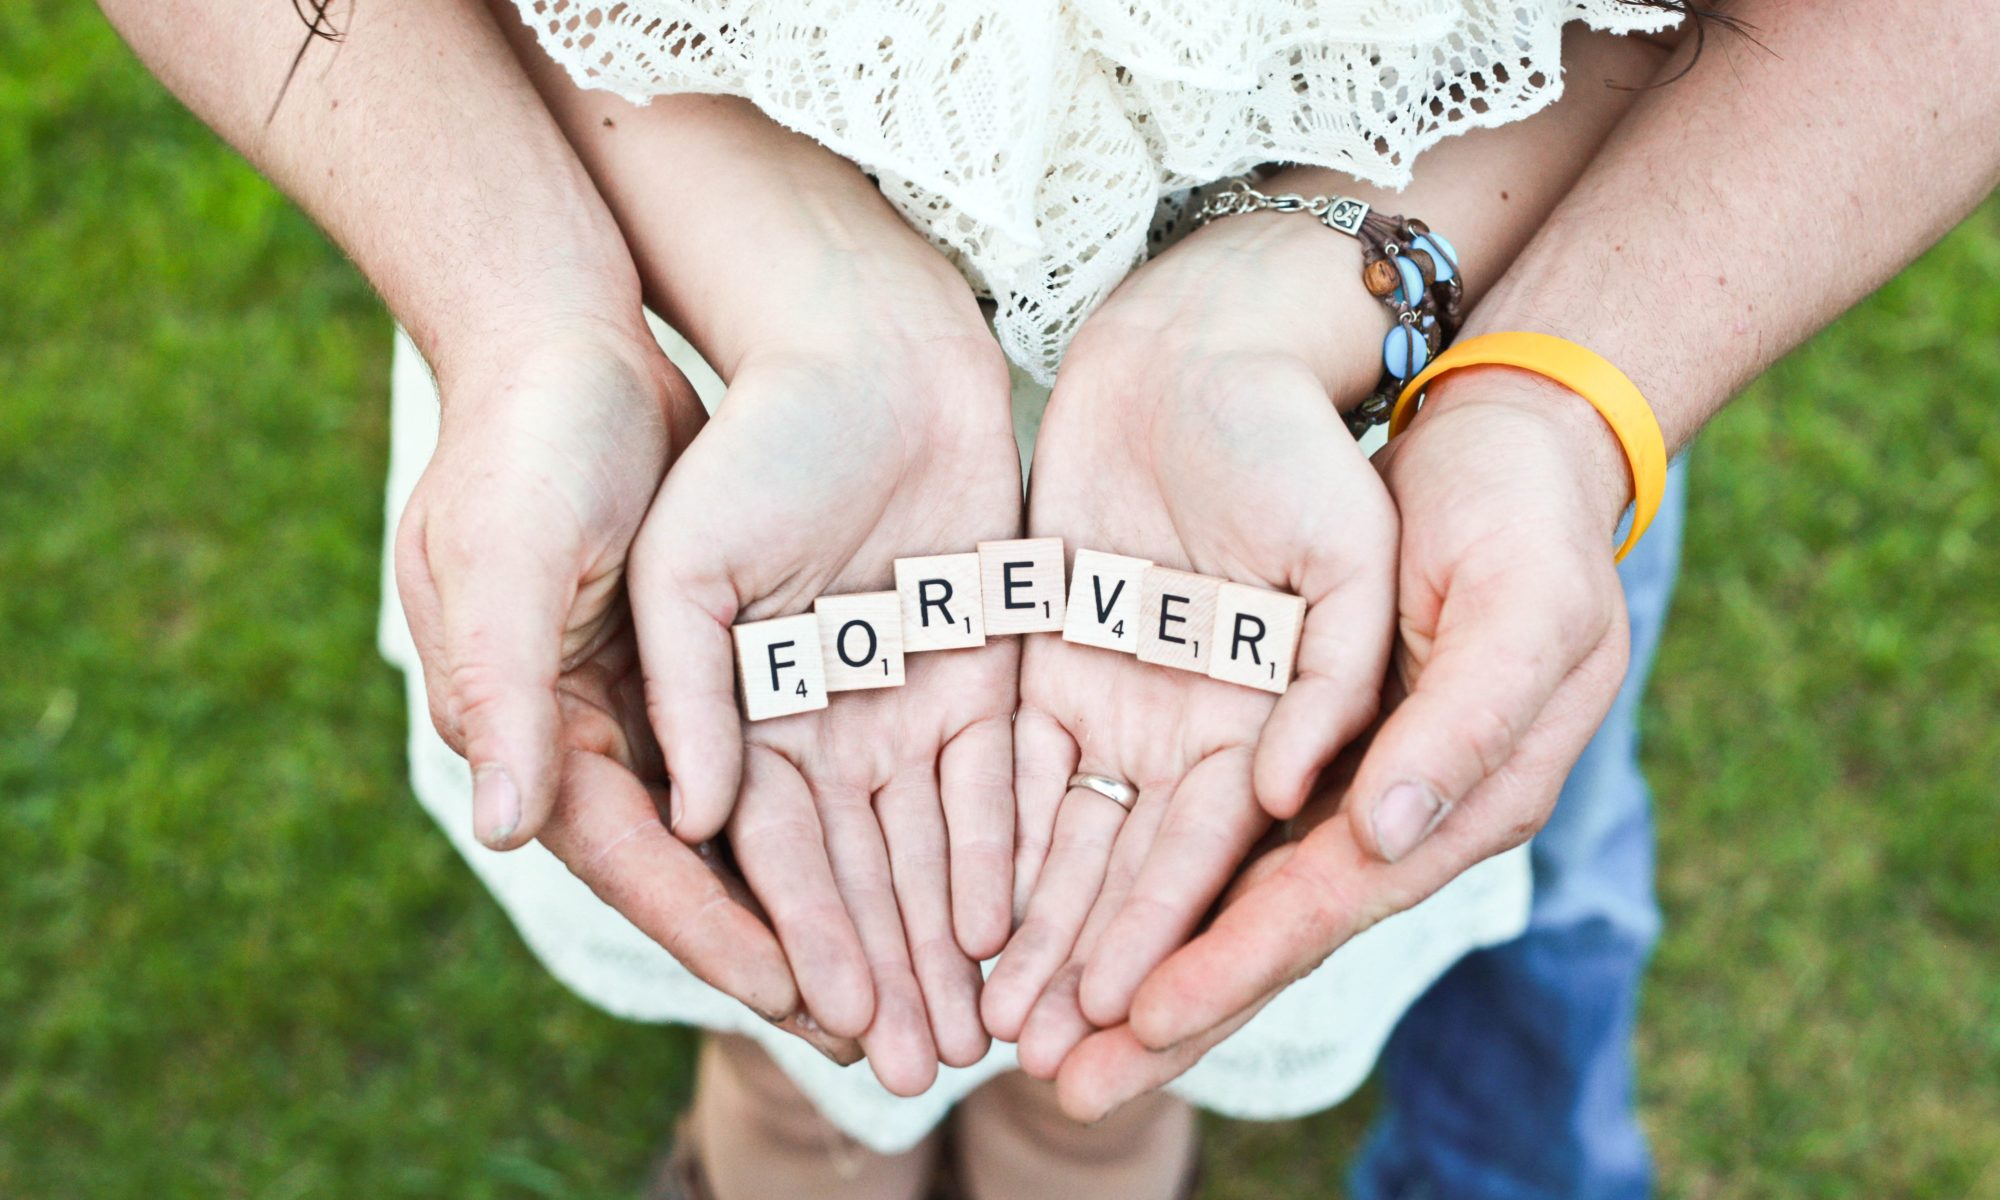 forever in scrabble letters in hands